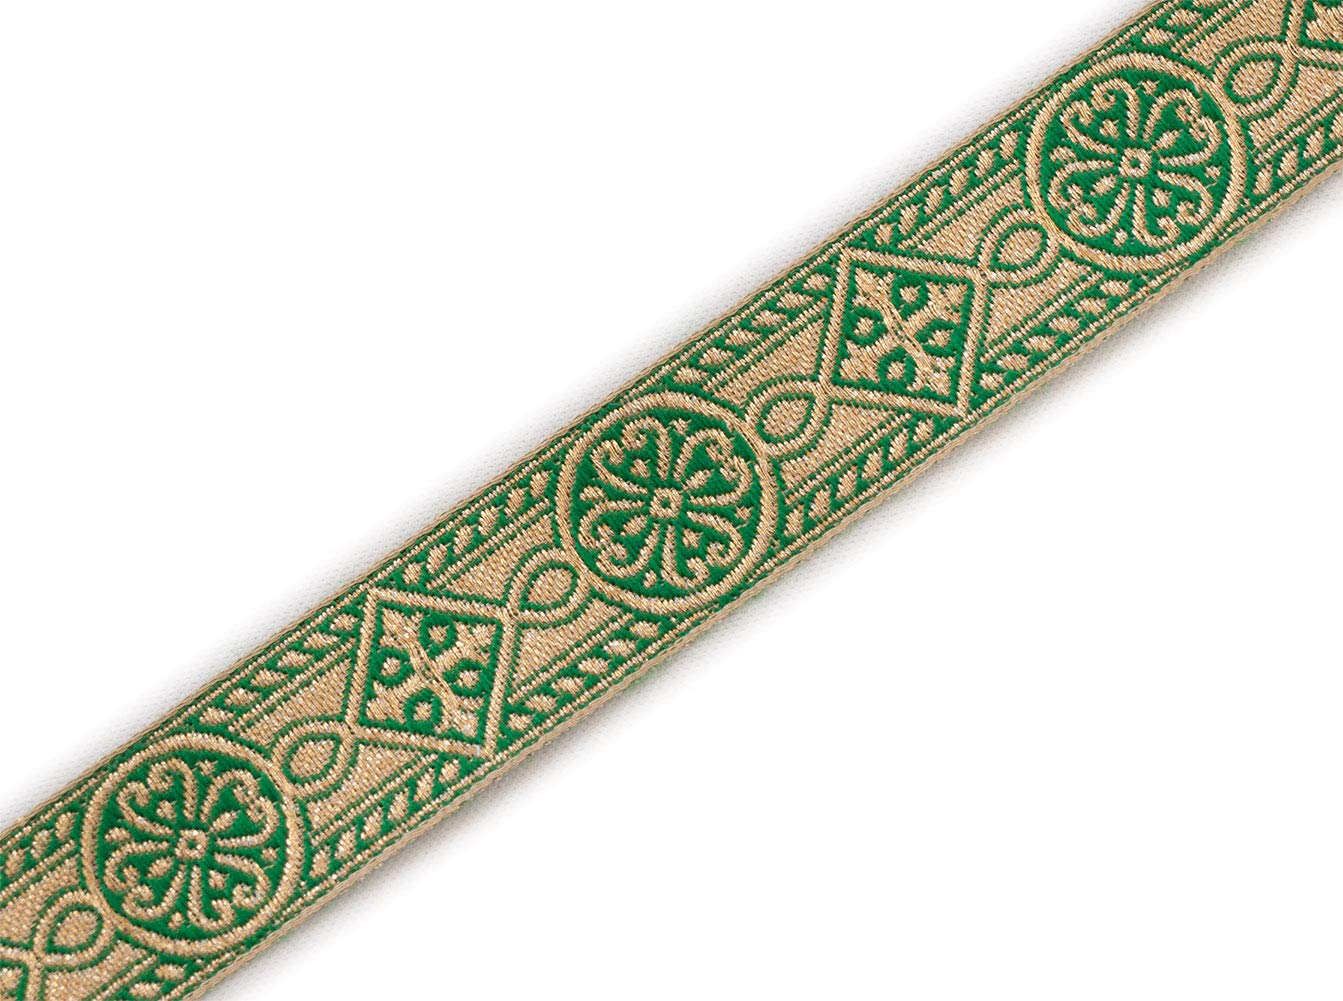 1 Wide Green Gold Jacquard Chasuble Medieval Church Vestment Trim 5 Yds DIY